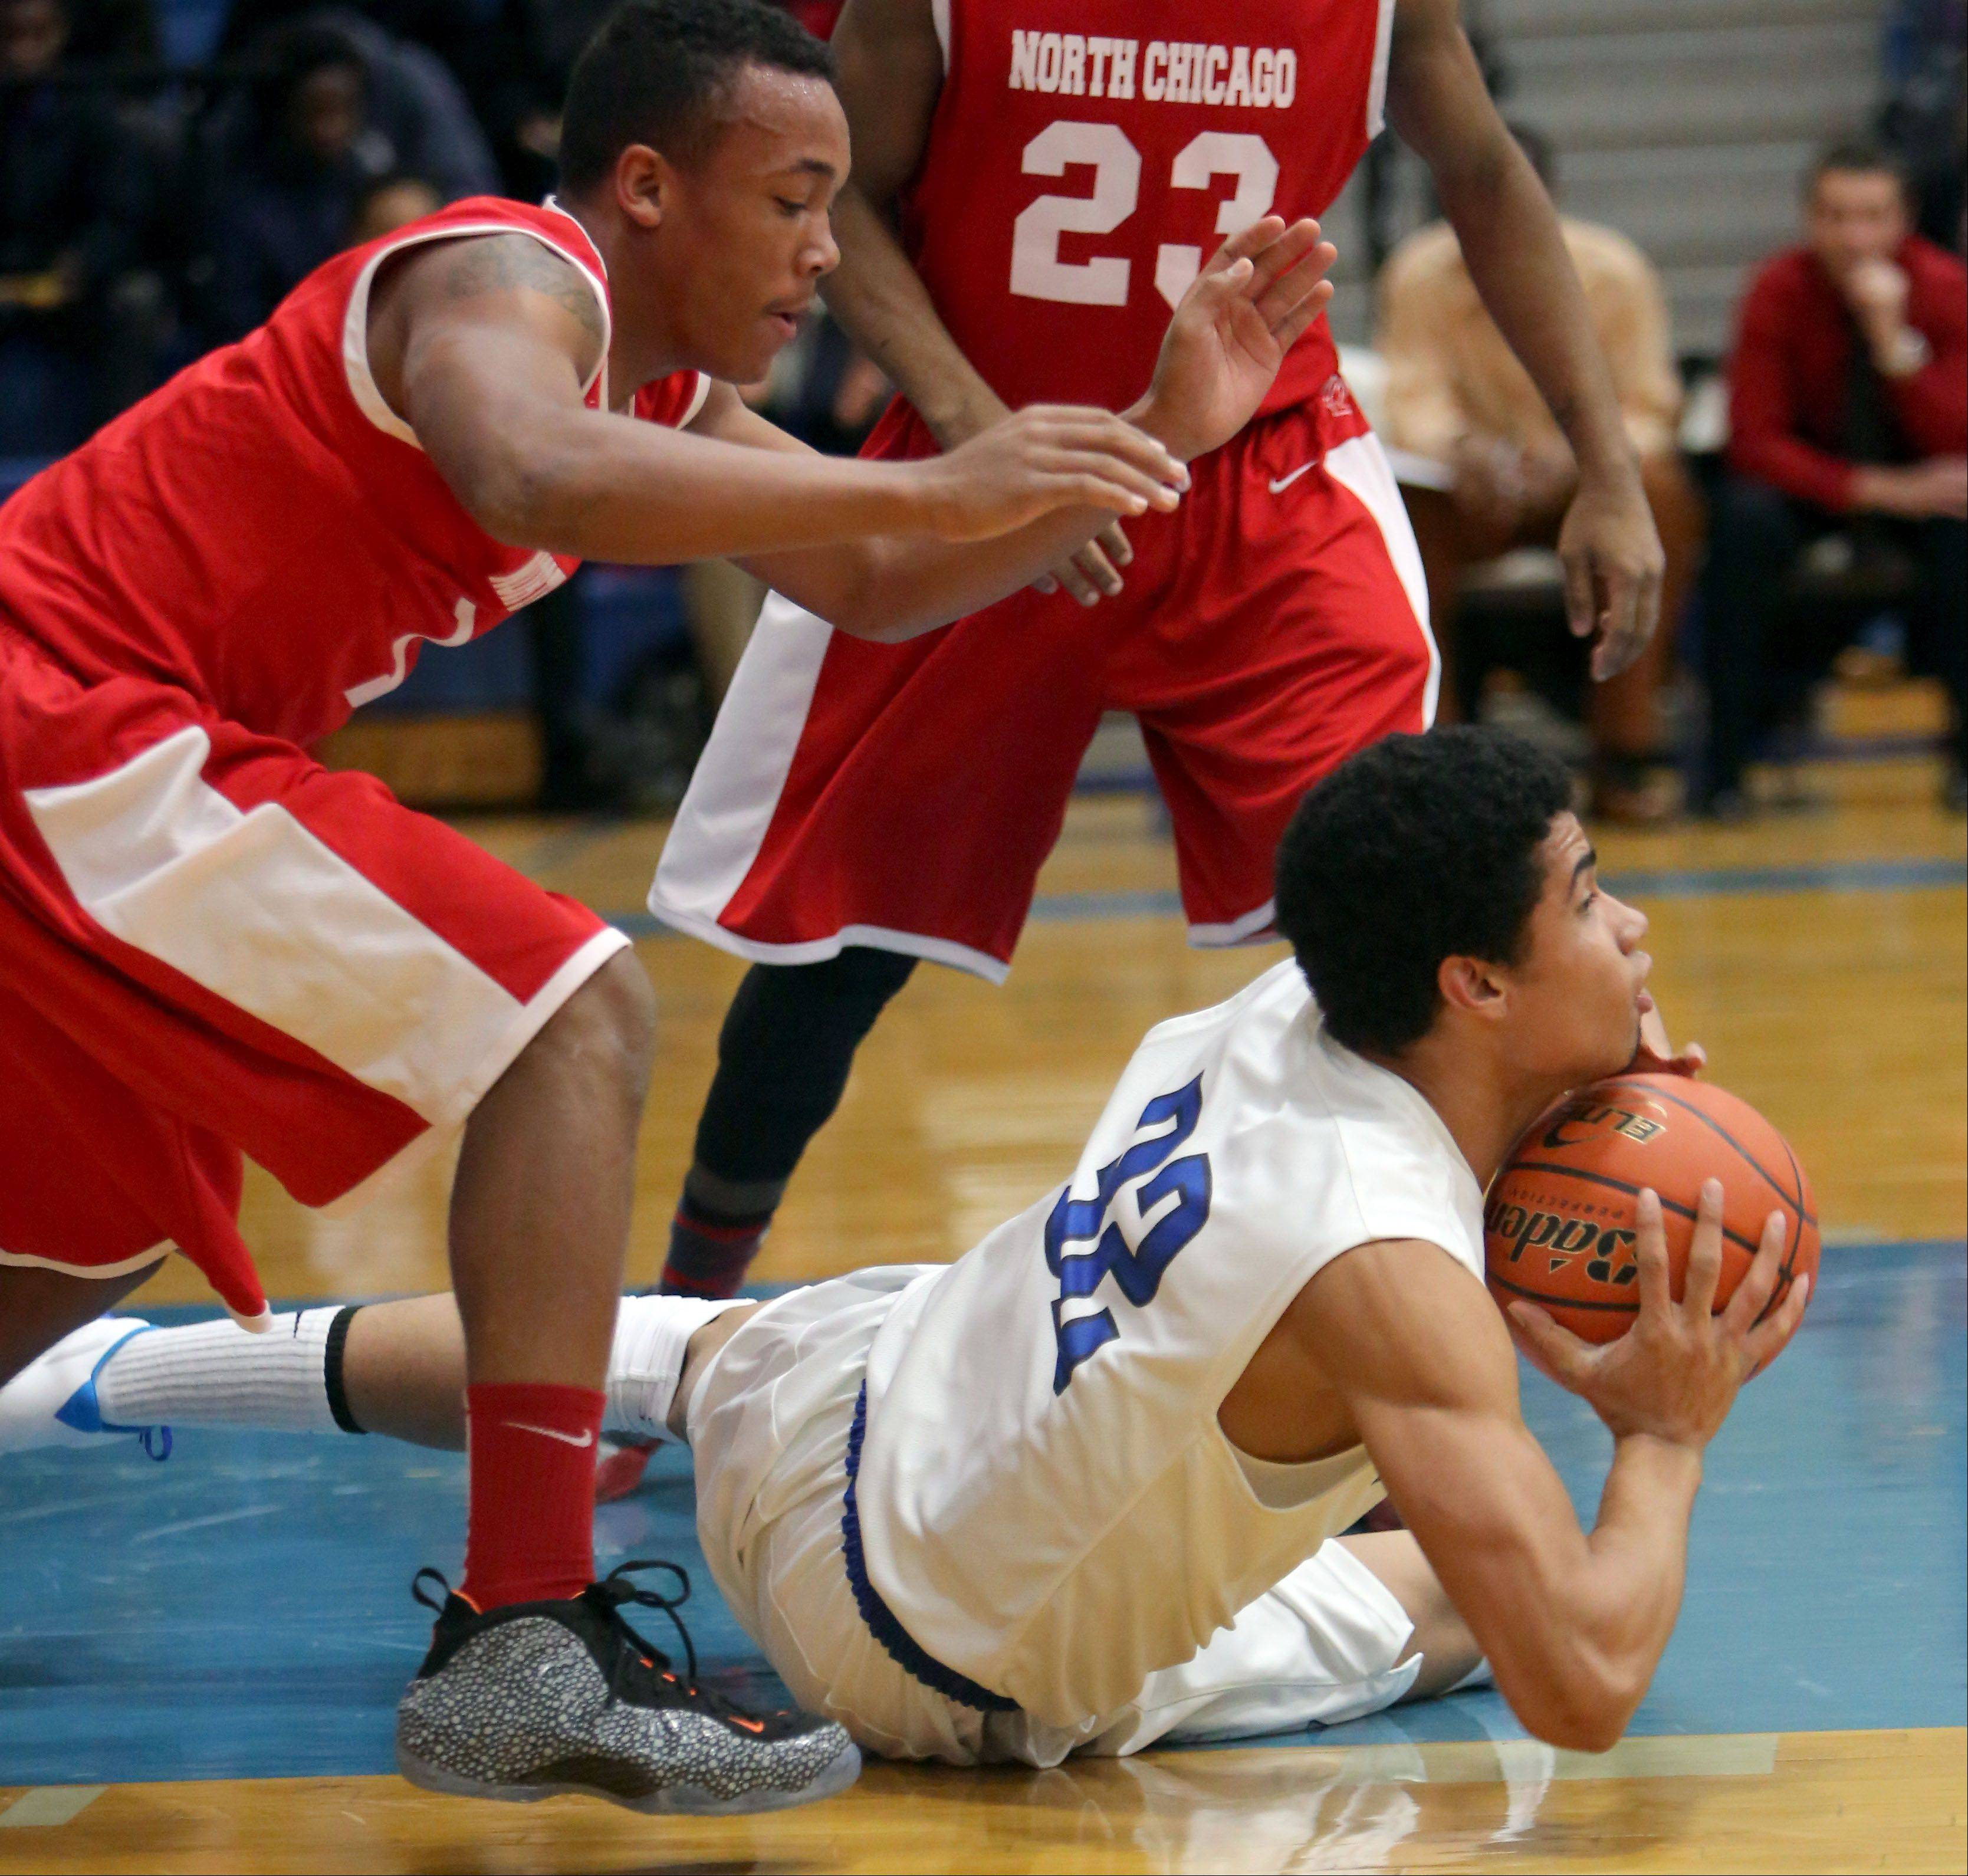 Vernon Hills' Lem Turner, right, battles for a rebound with North Chicago's Arnold Shead.